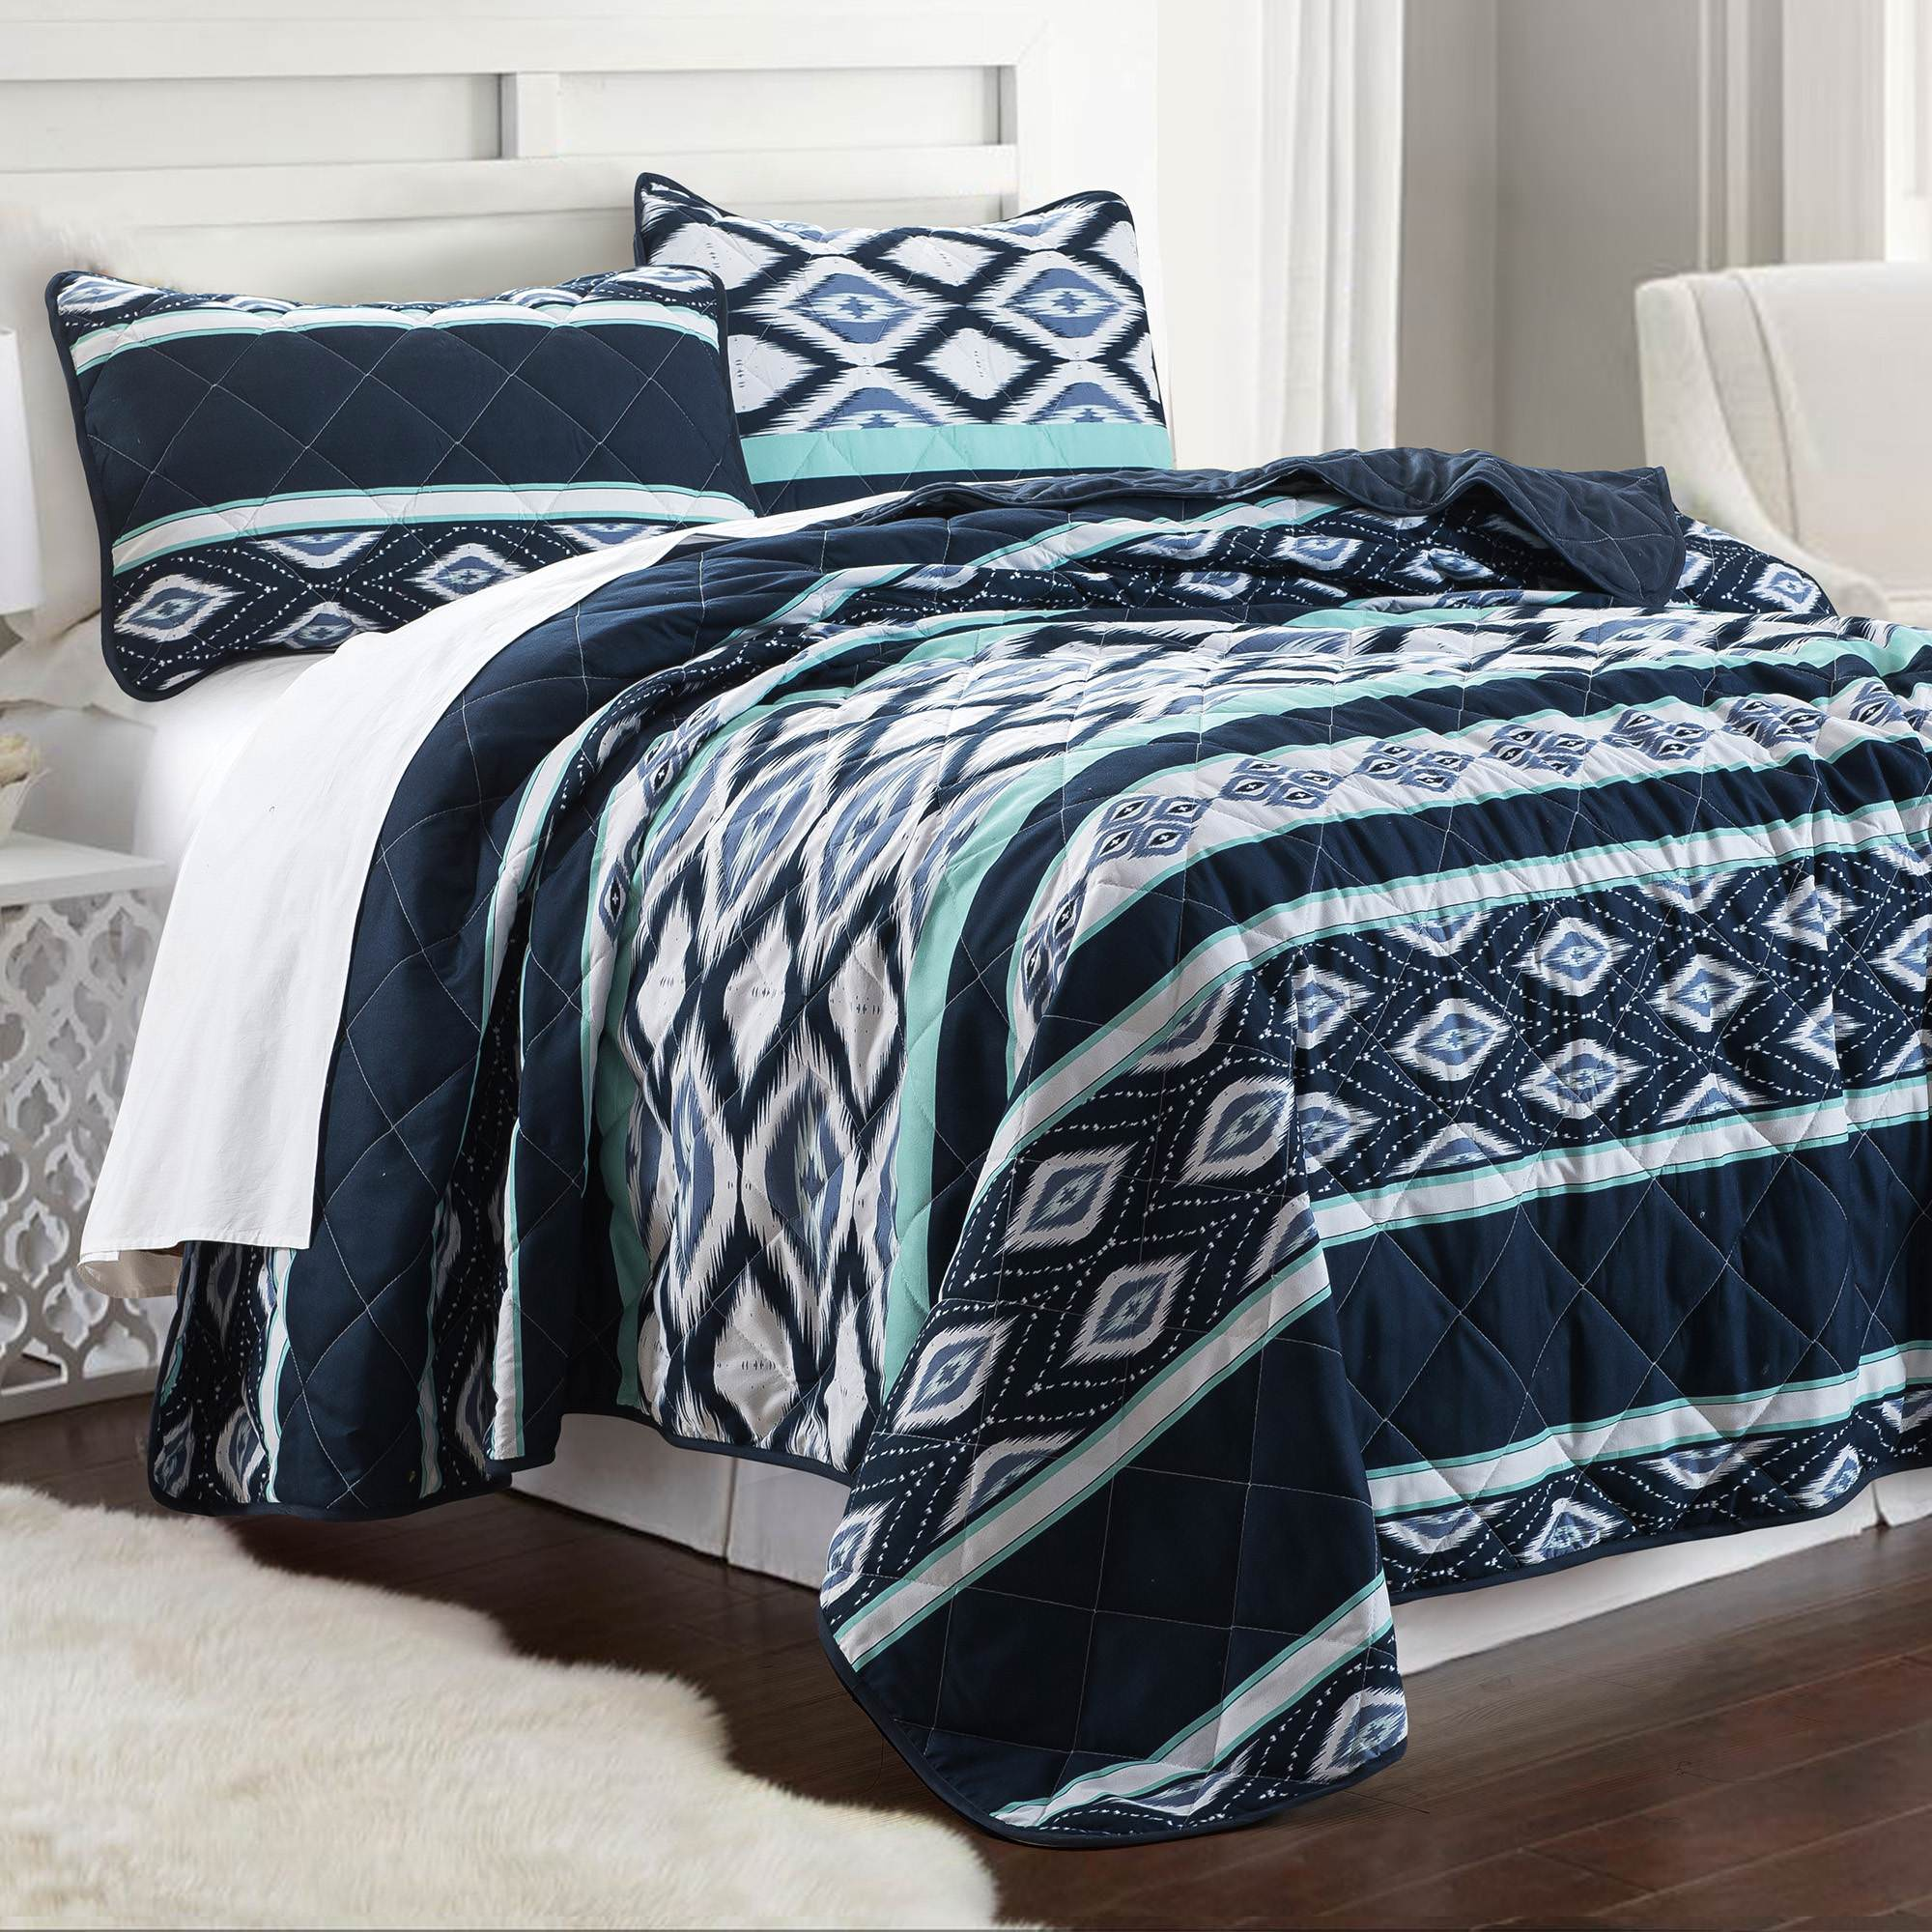 3 PIECE PRINTED REVERSIBLE COVERLET SET - BILLY IKAT